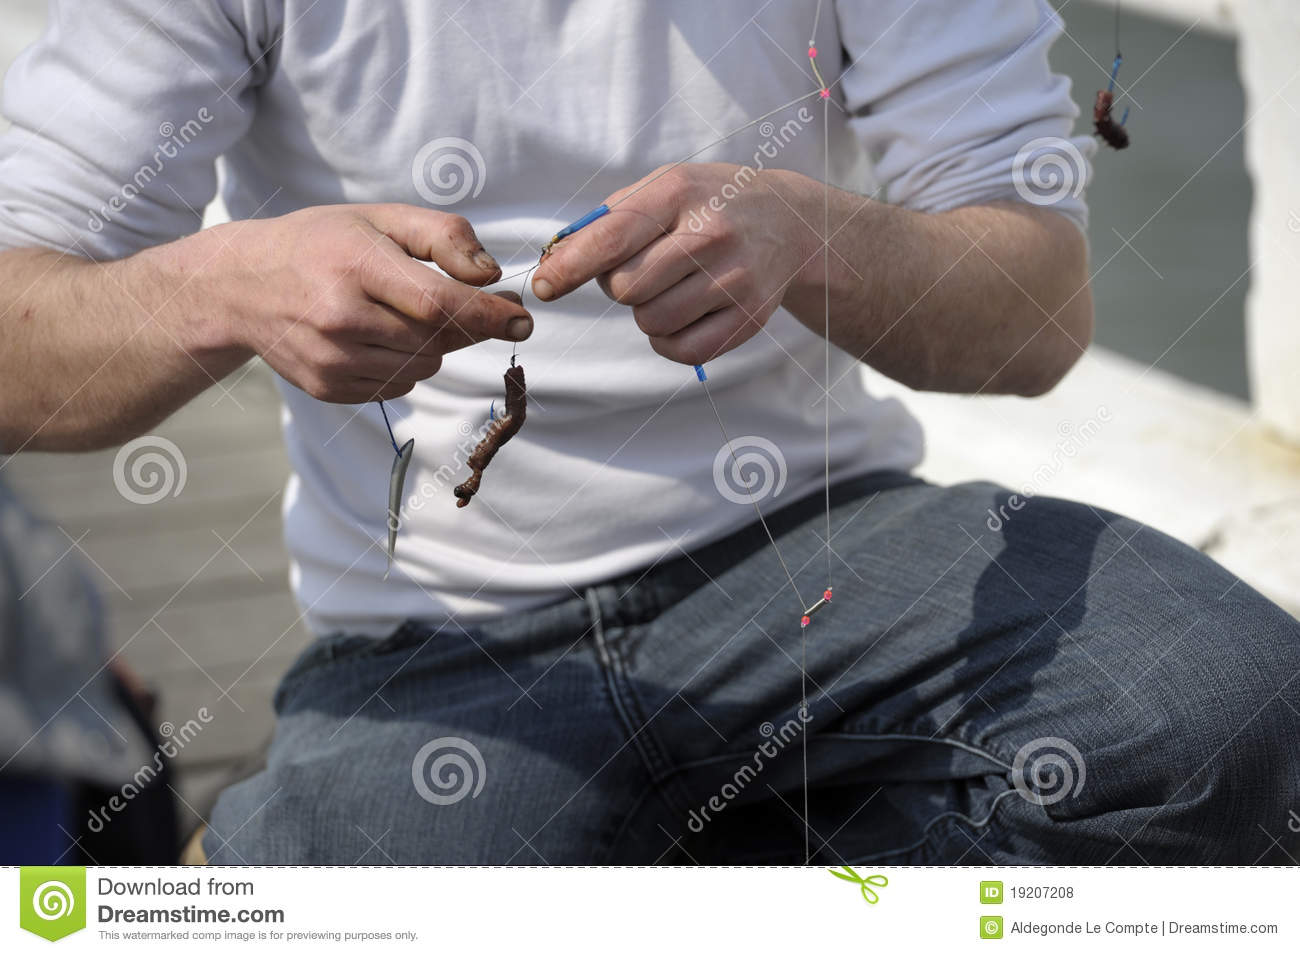 Closeup on hands putting worm on fishing hook